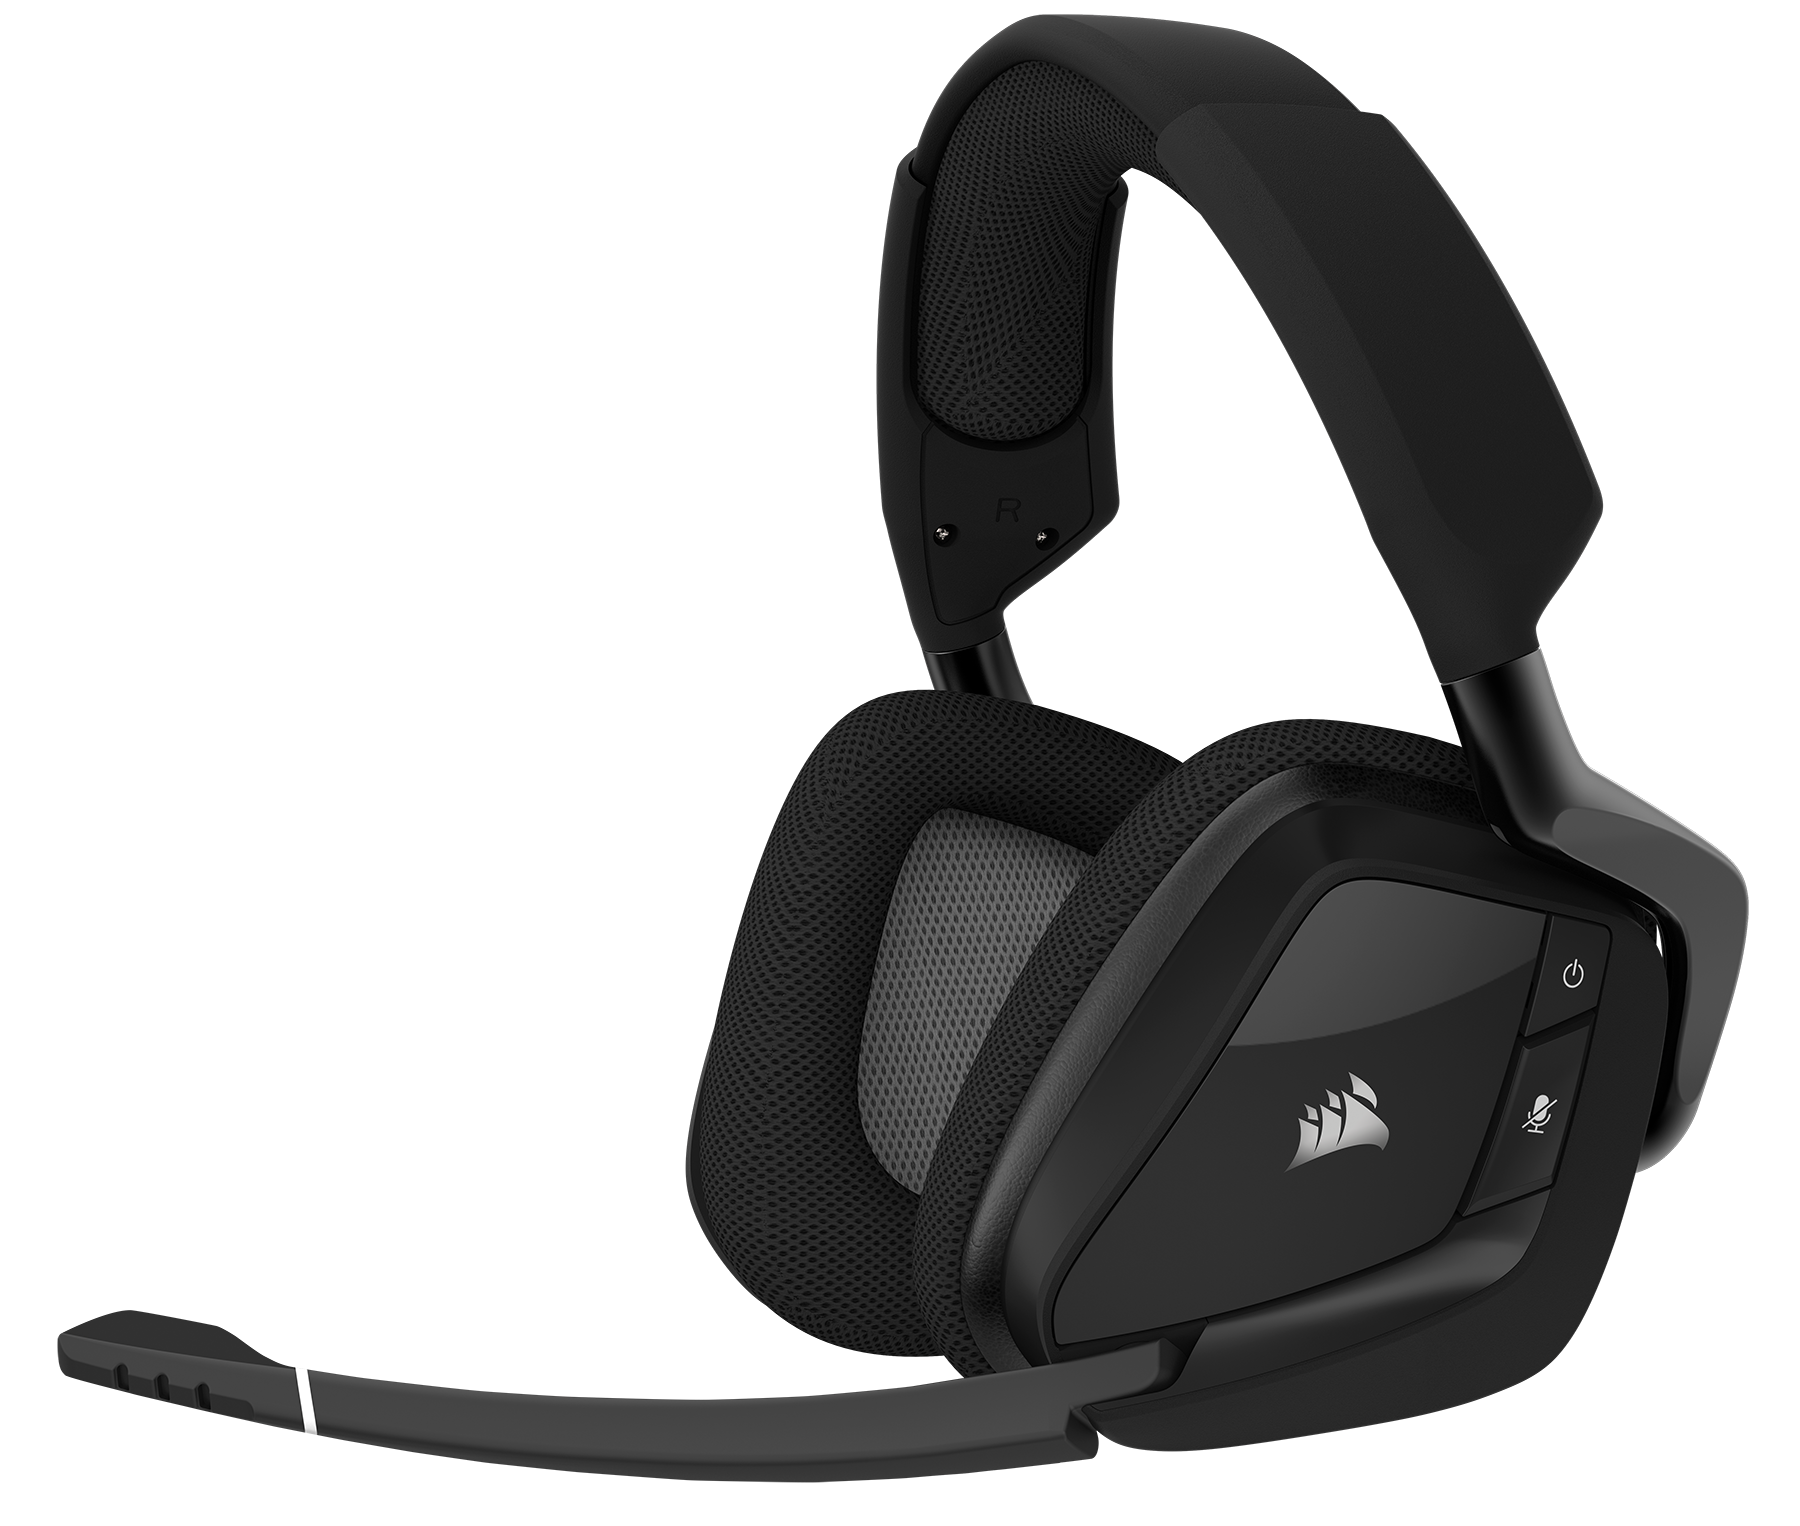 VOID PRO RGB Wireless Premium Gaming Headset with Dolby